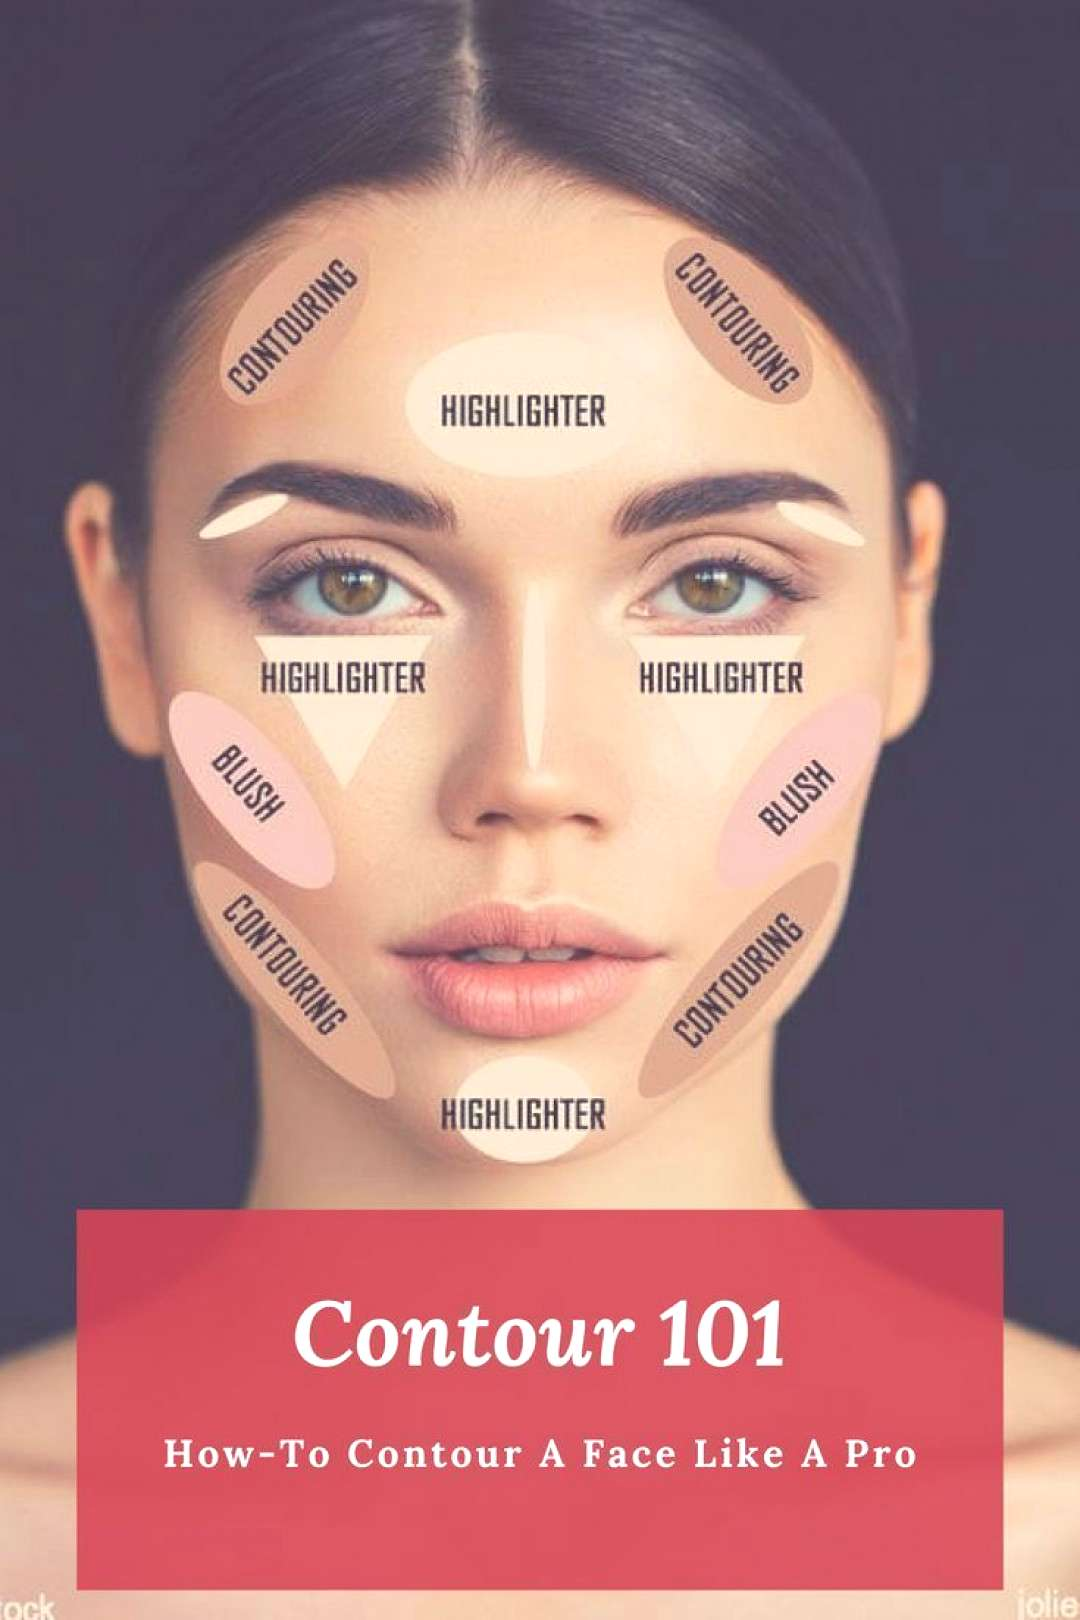 Contour 101: How-To Contour A Face Like A Pro In depth contouring guide ... Contour 101: How-To Con